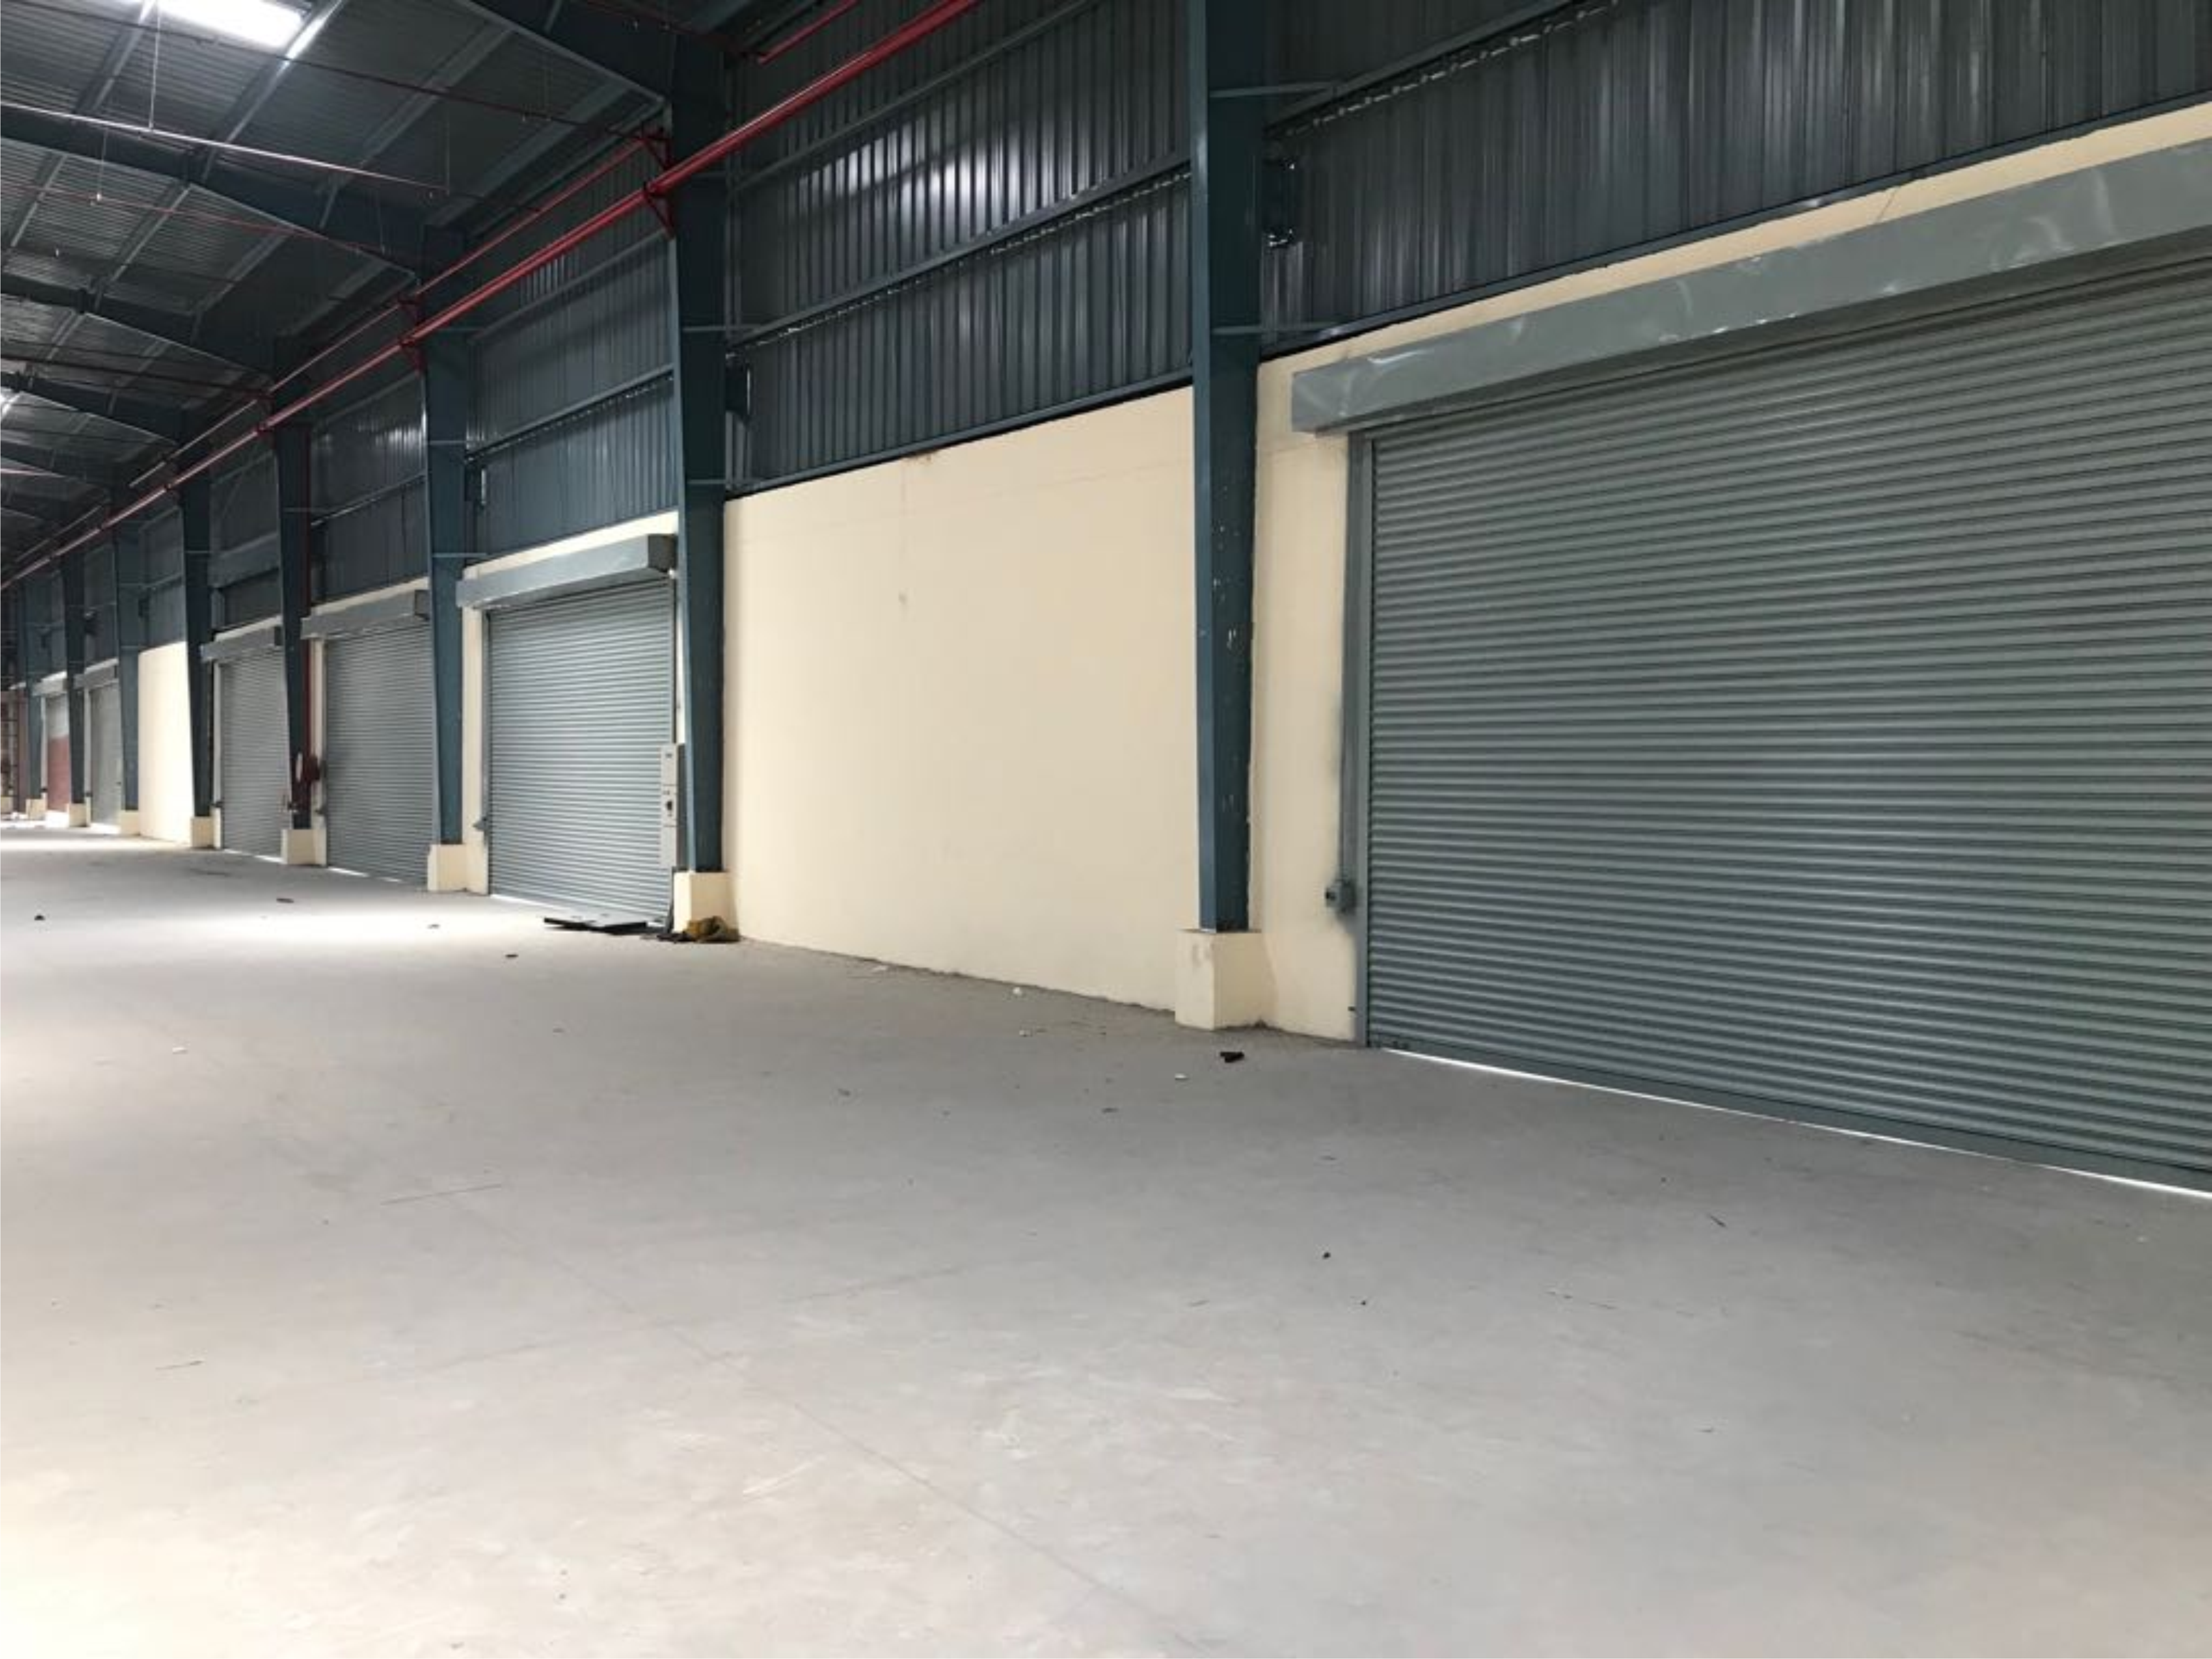 Automatic Rolling Shutters Manufacturer in Noida - Hind Automatic Systems is a entrance automation company ,doing fabrication , manufacturing and supplying of Motorized Rolling Shutters, Automatic Gates, High Speed Doors, Dock Levelers, Sectional Doors, Automatic Boom Barriers